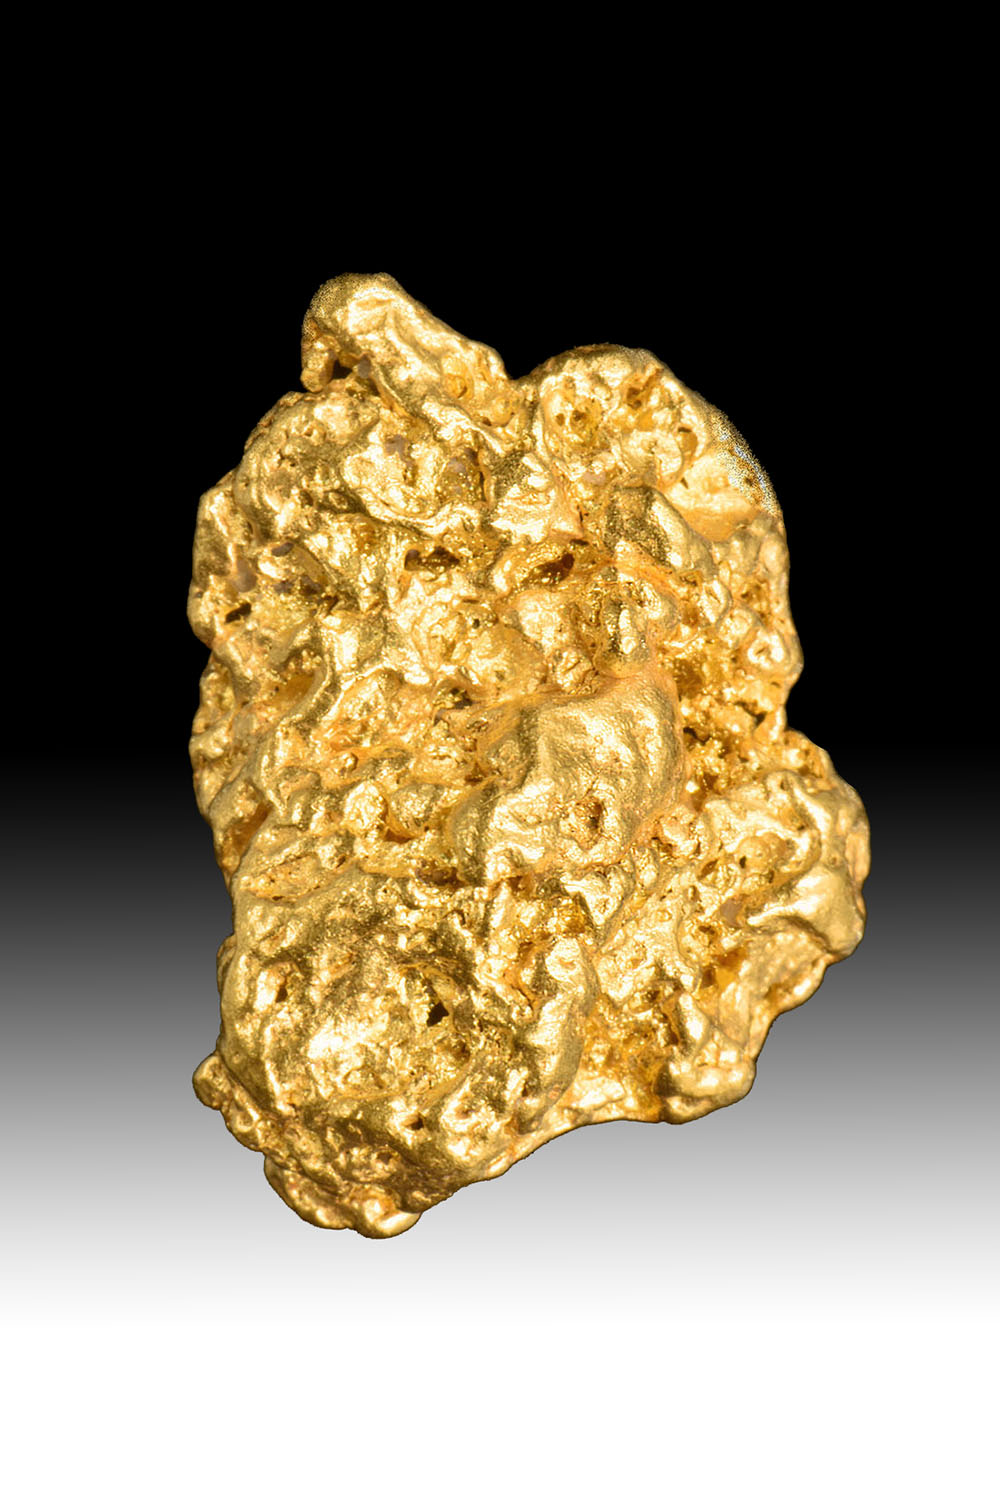 Heavily Textured - Australian Gold Nugget - Jewelry Grade